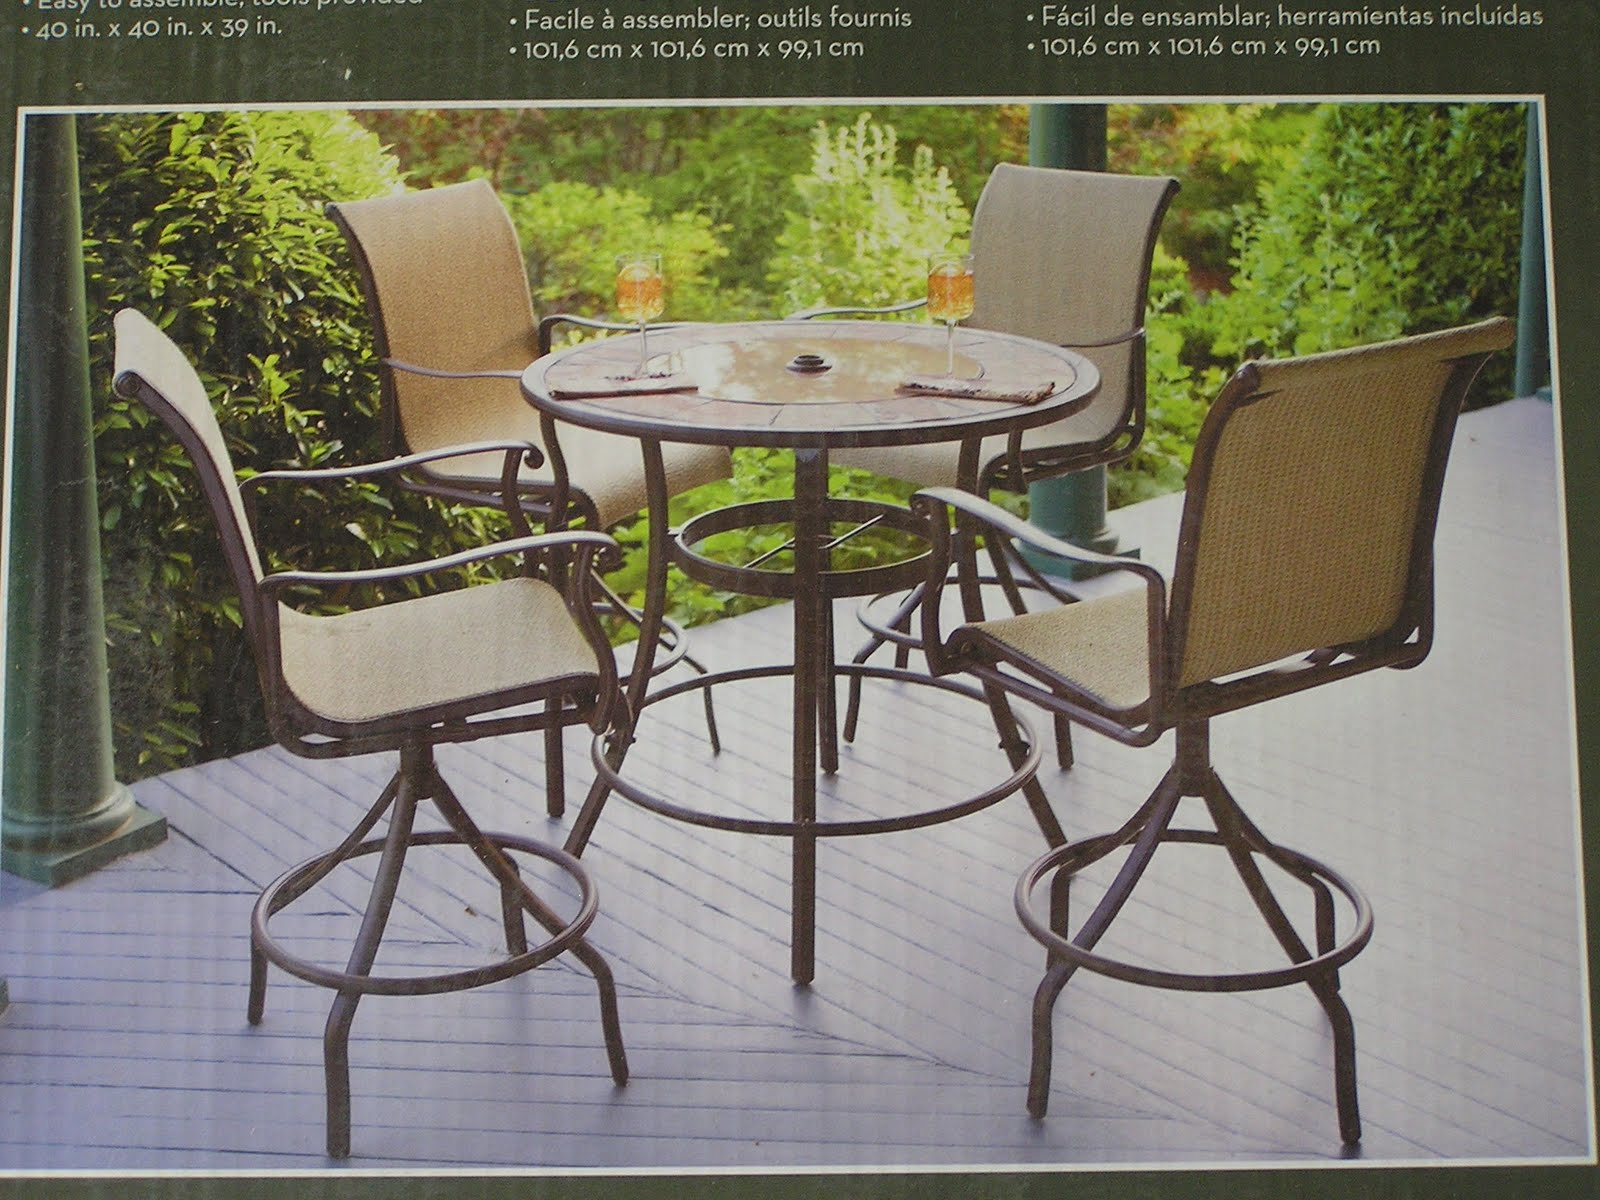 Patio Table Set Patio Design Ideas